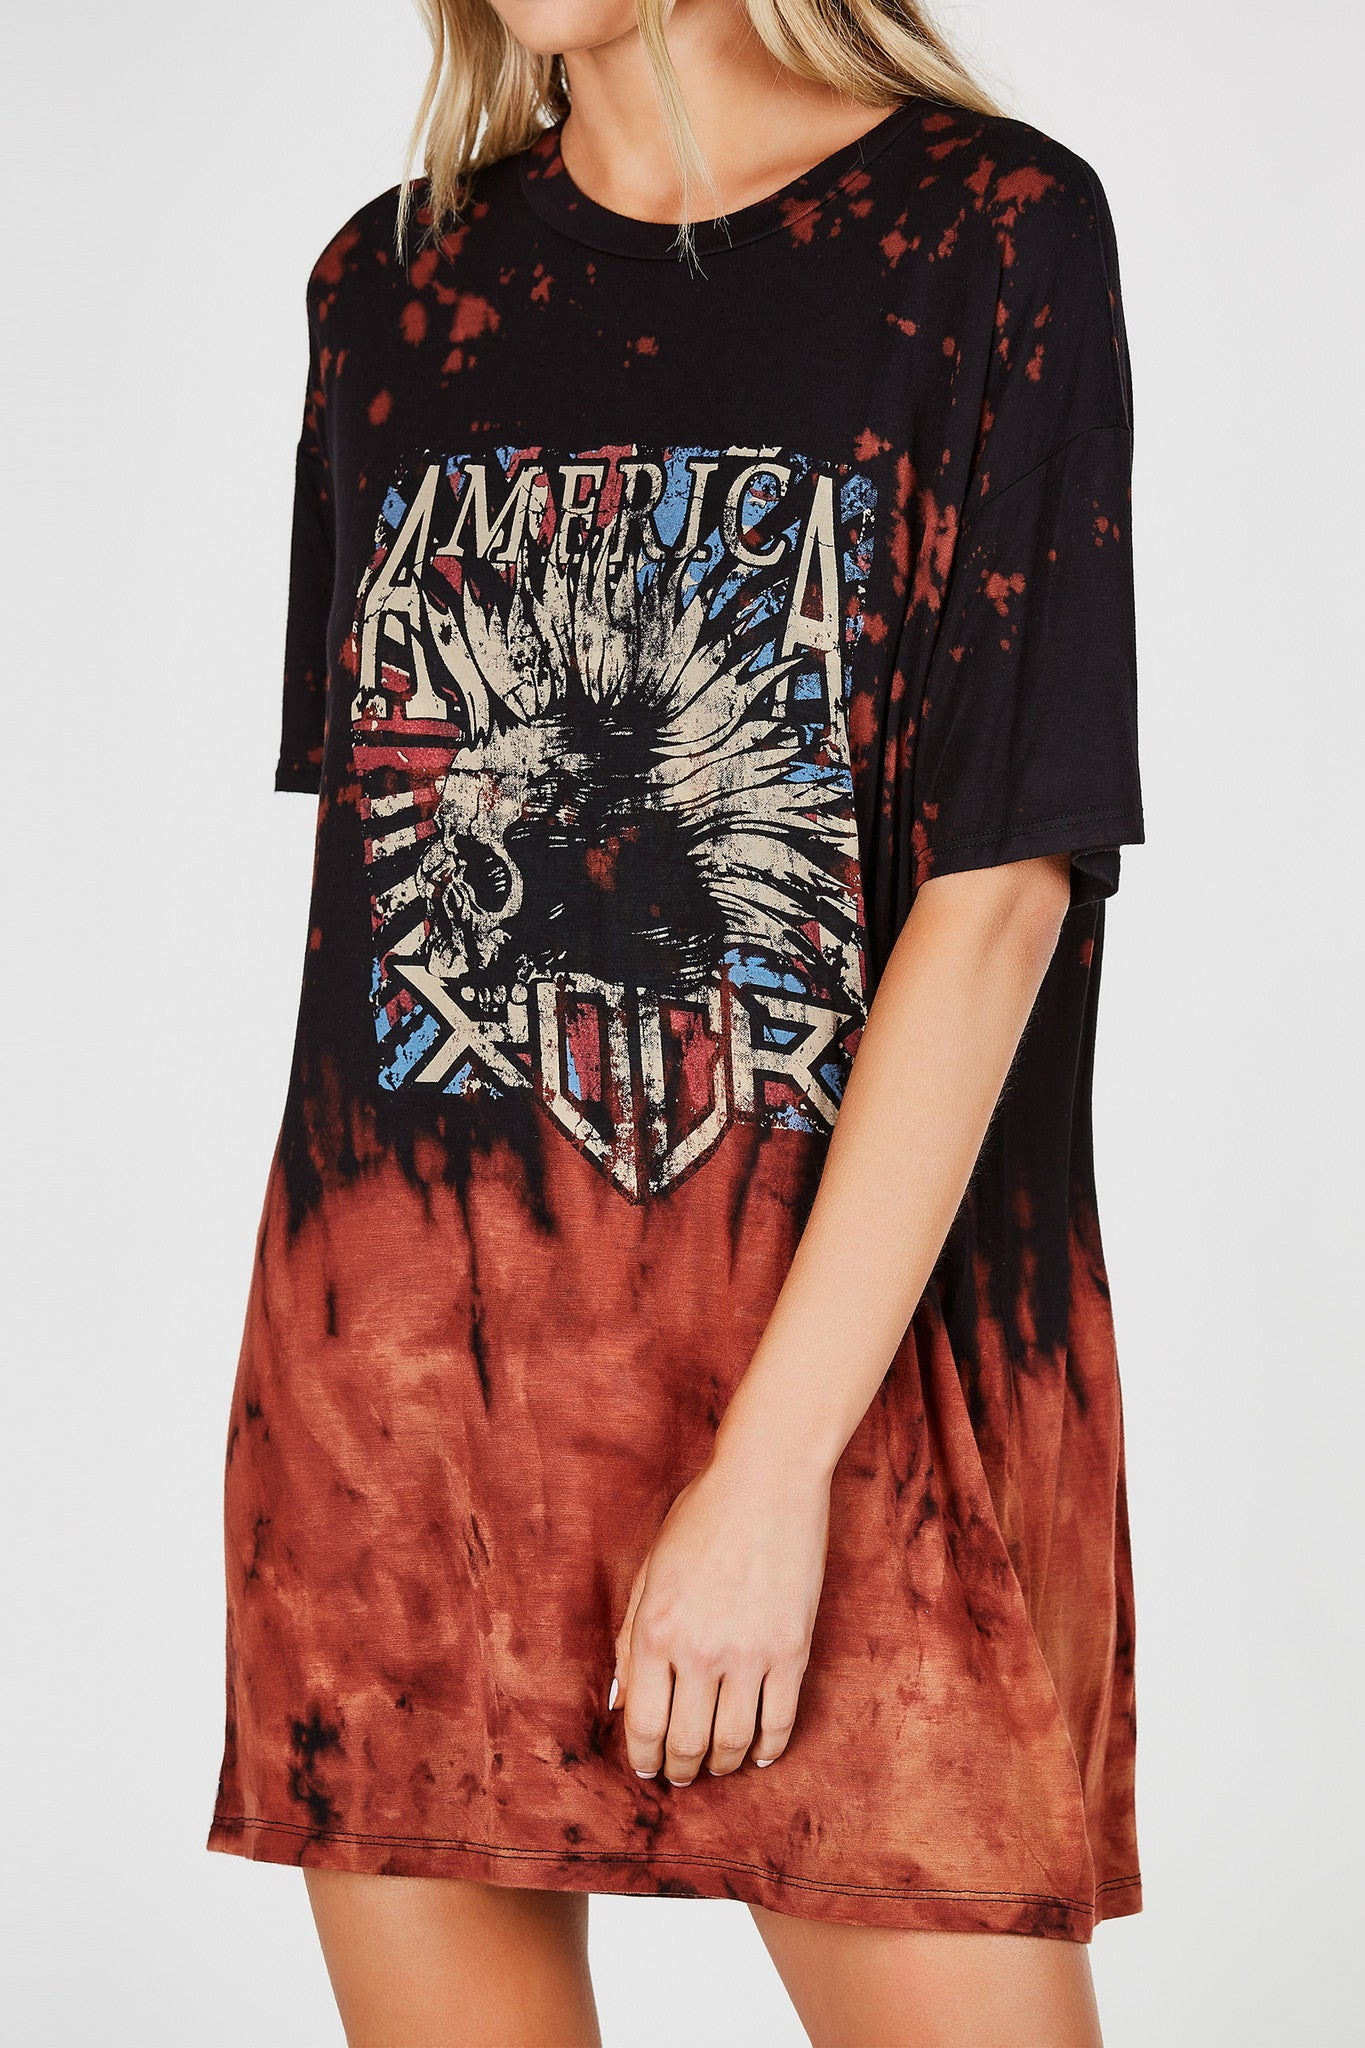 Round neck oversized T-shirt dress with graphic in front. Bleached finish with straight hem all around.